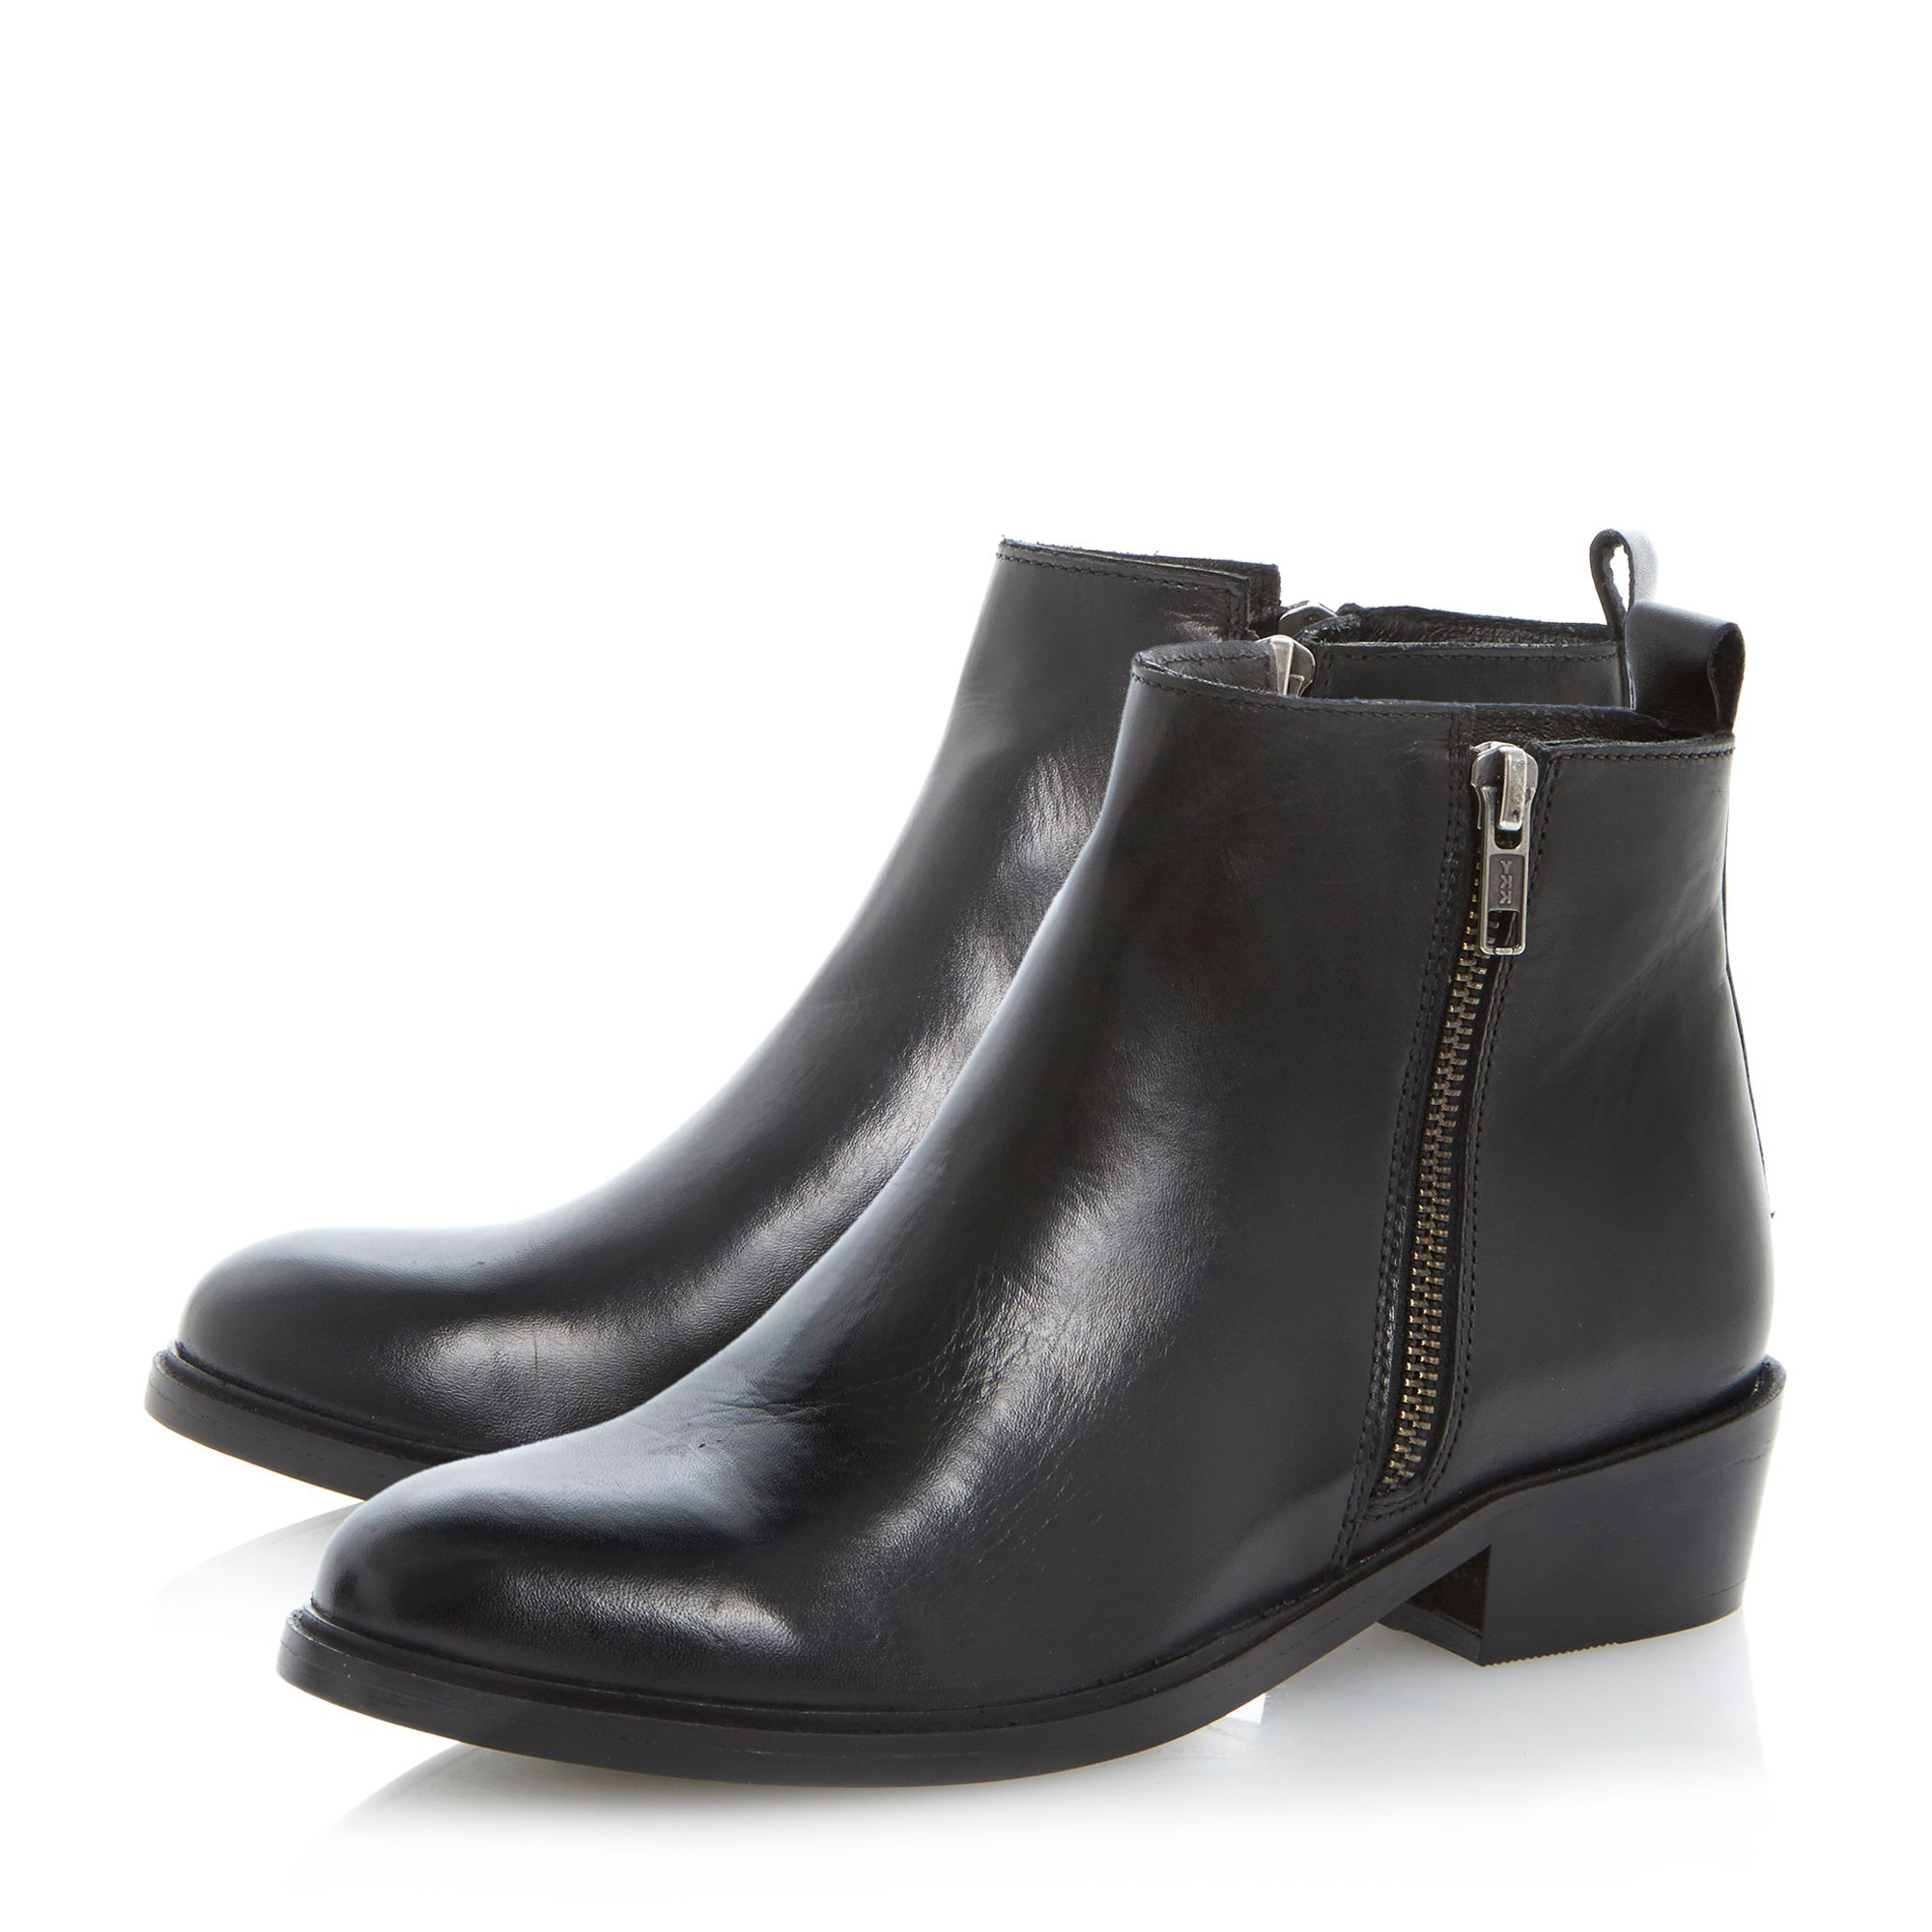 Pippie side zip leather ankle boot